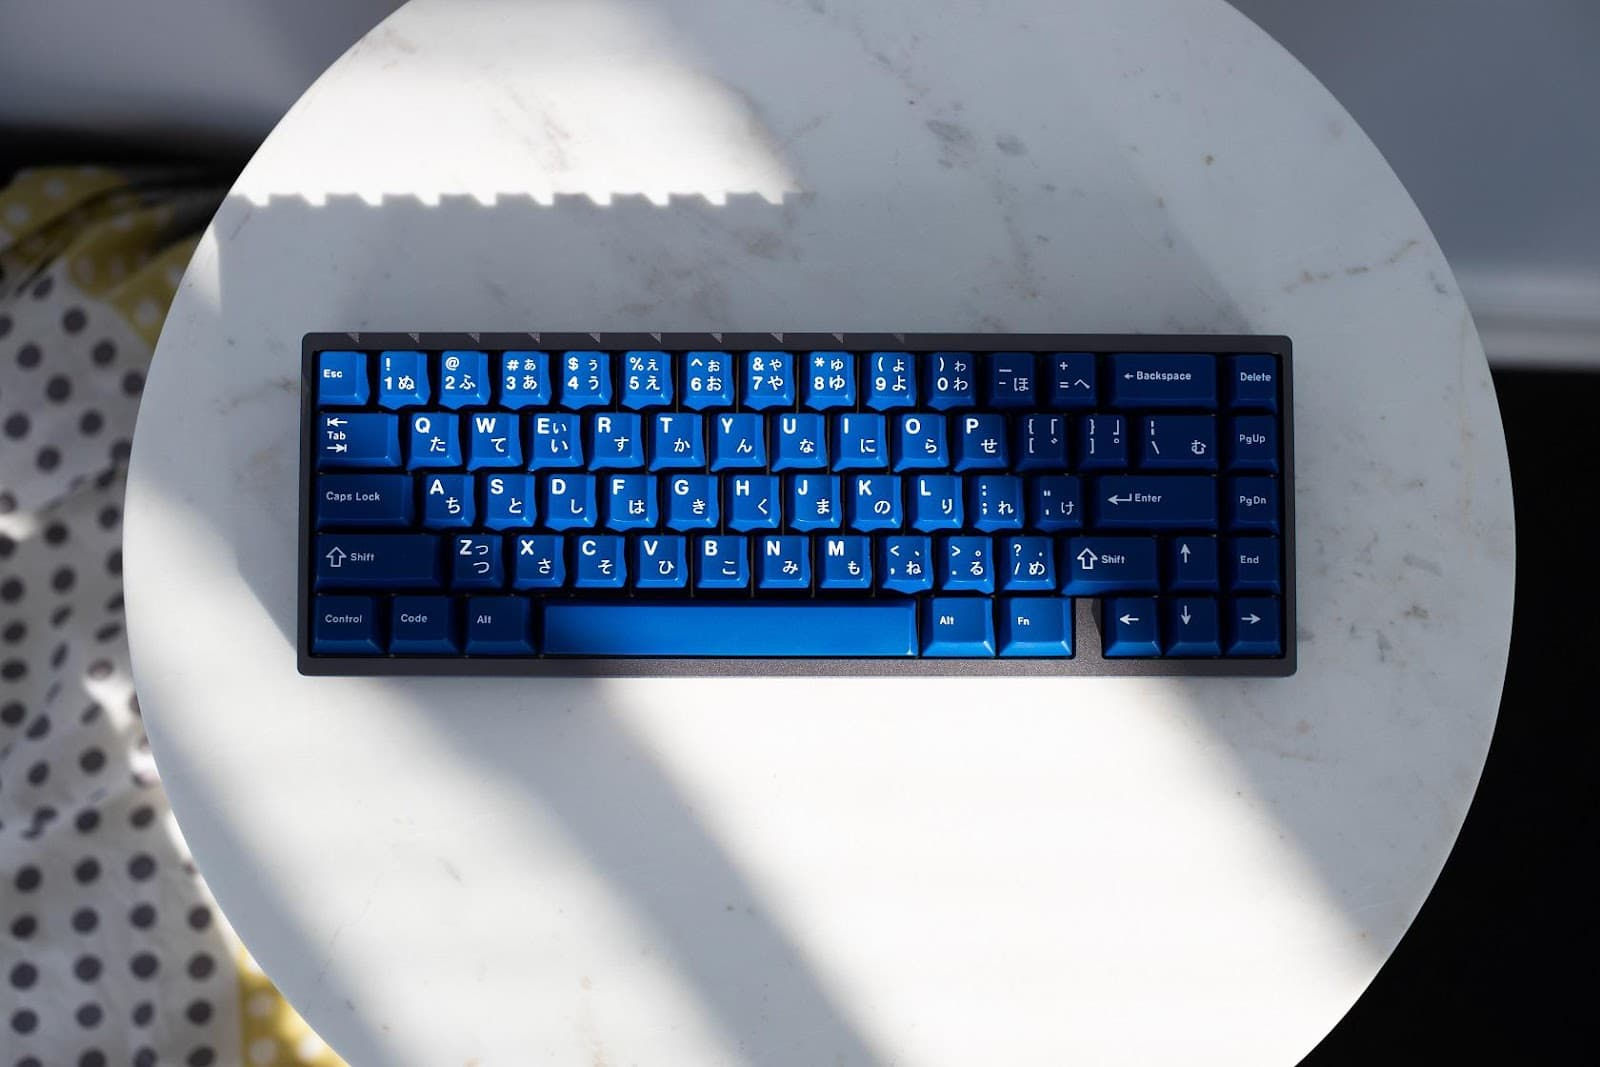 GMK Striker, an example of ABS keycaps